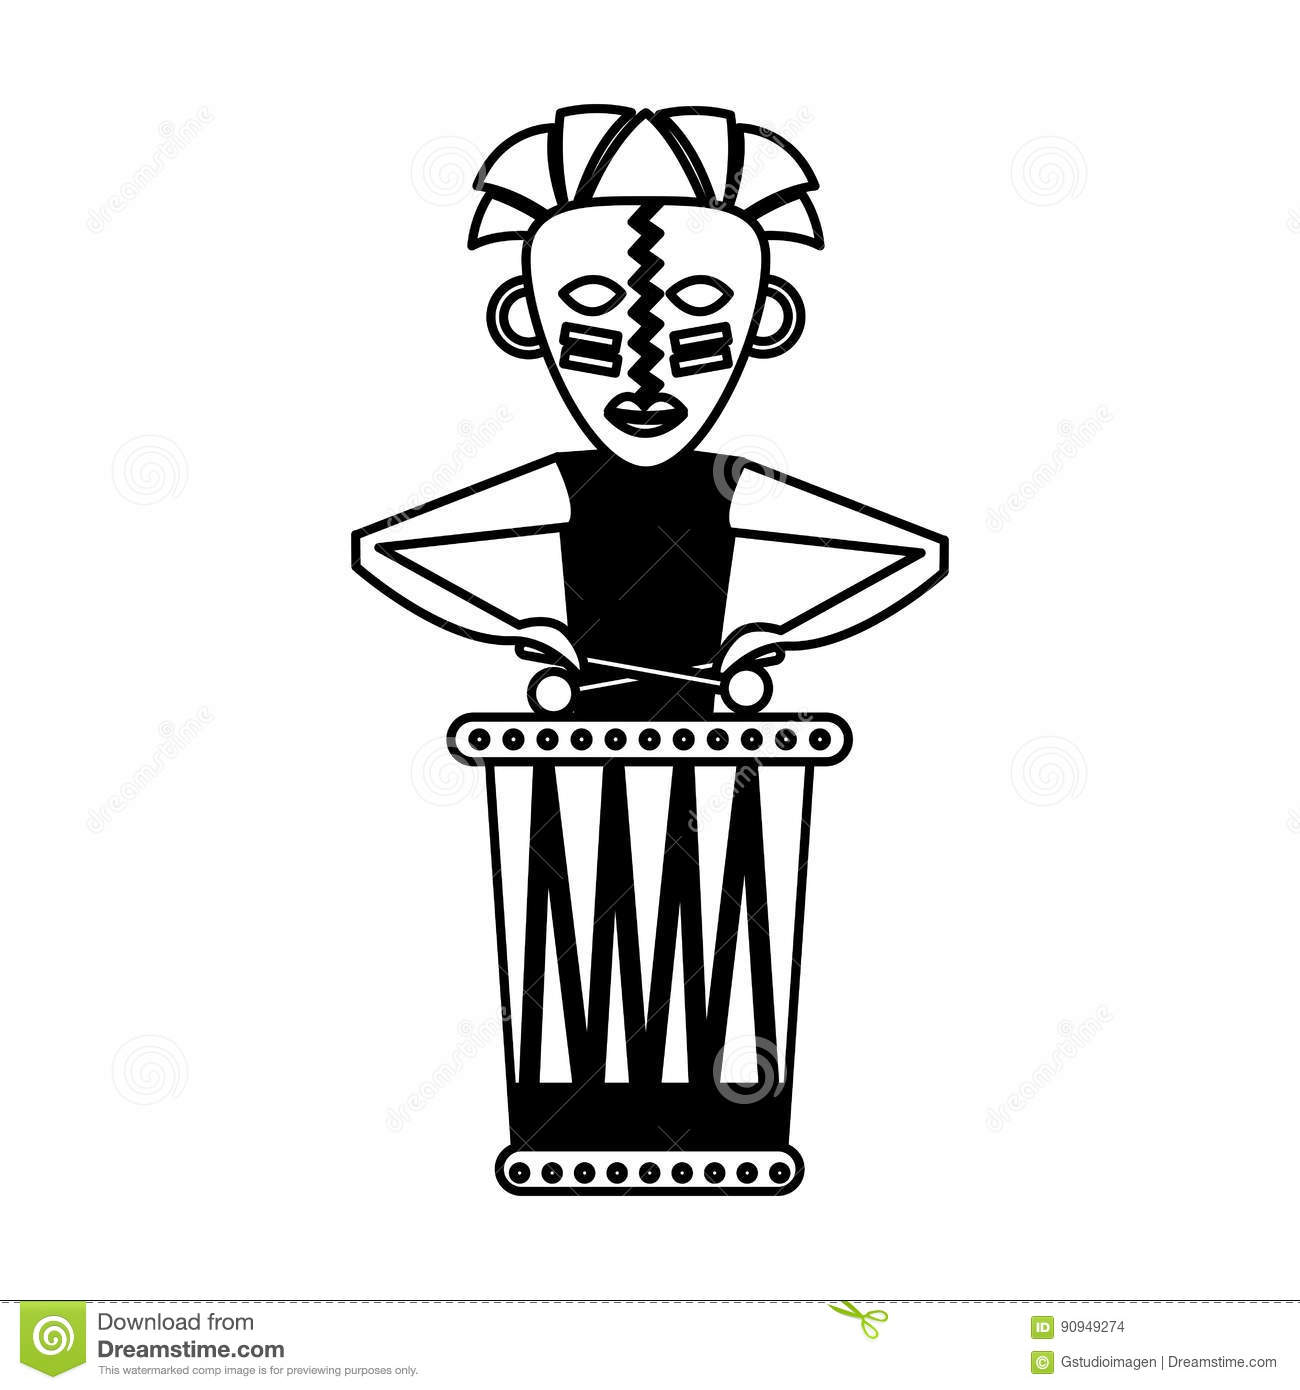 Drum Player Graphic Vector. Vector Illustration